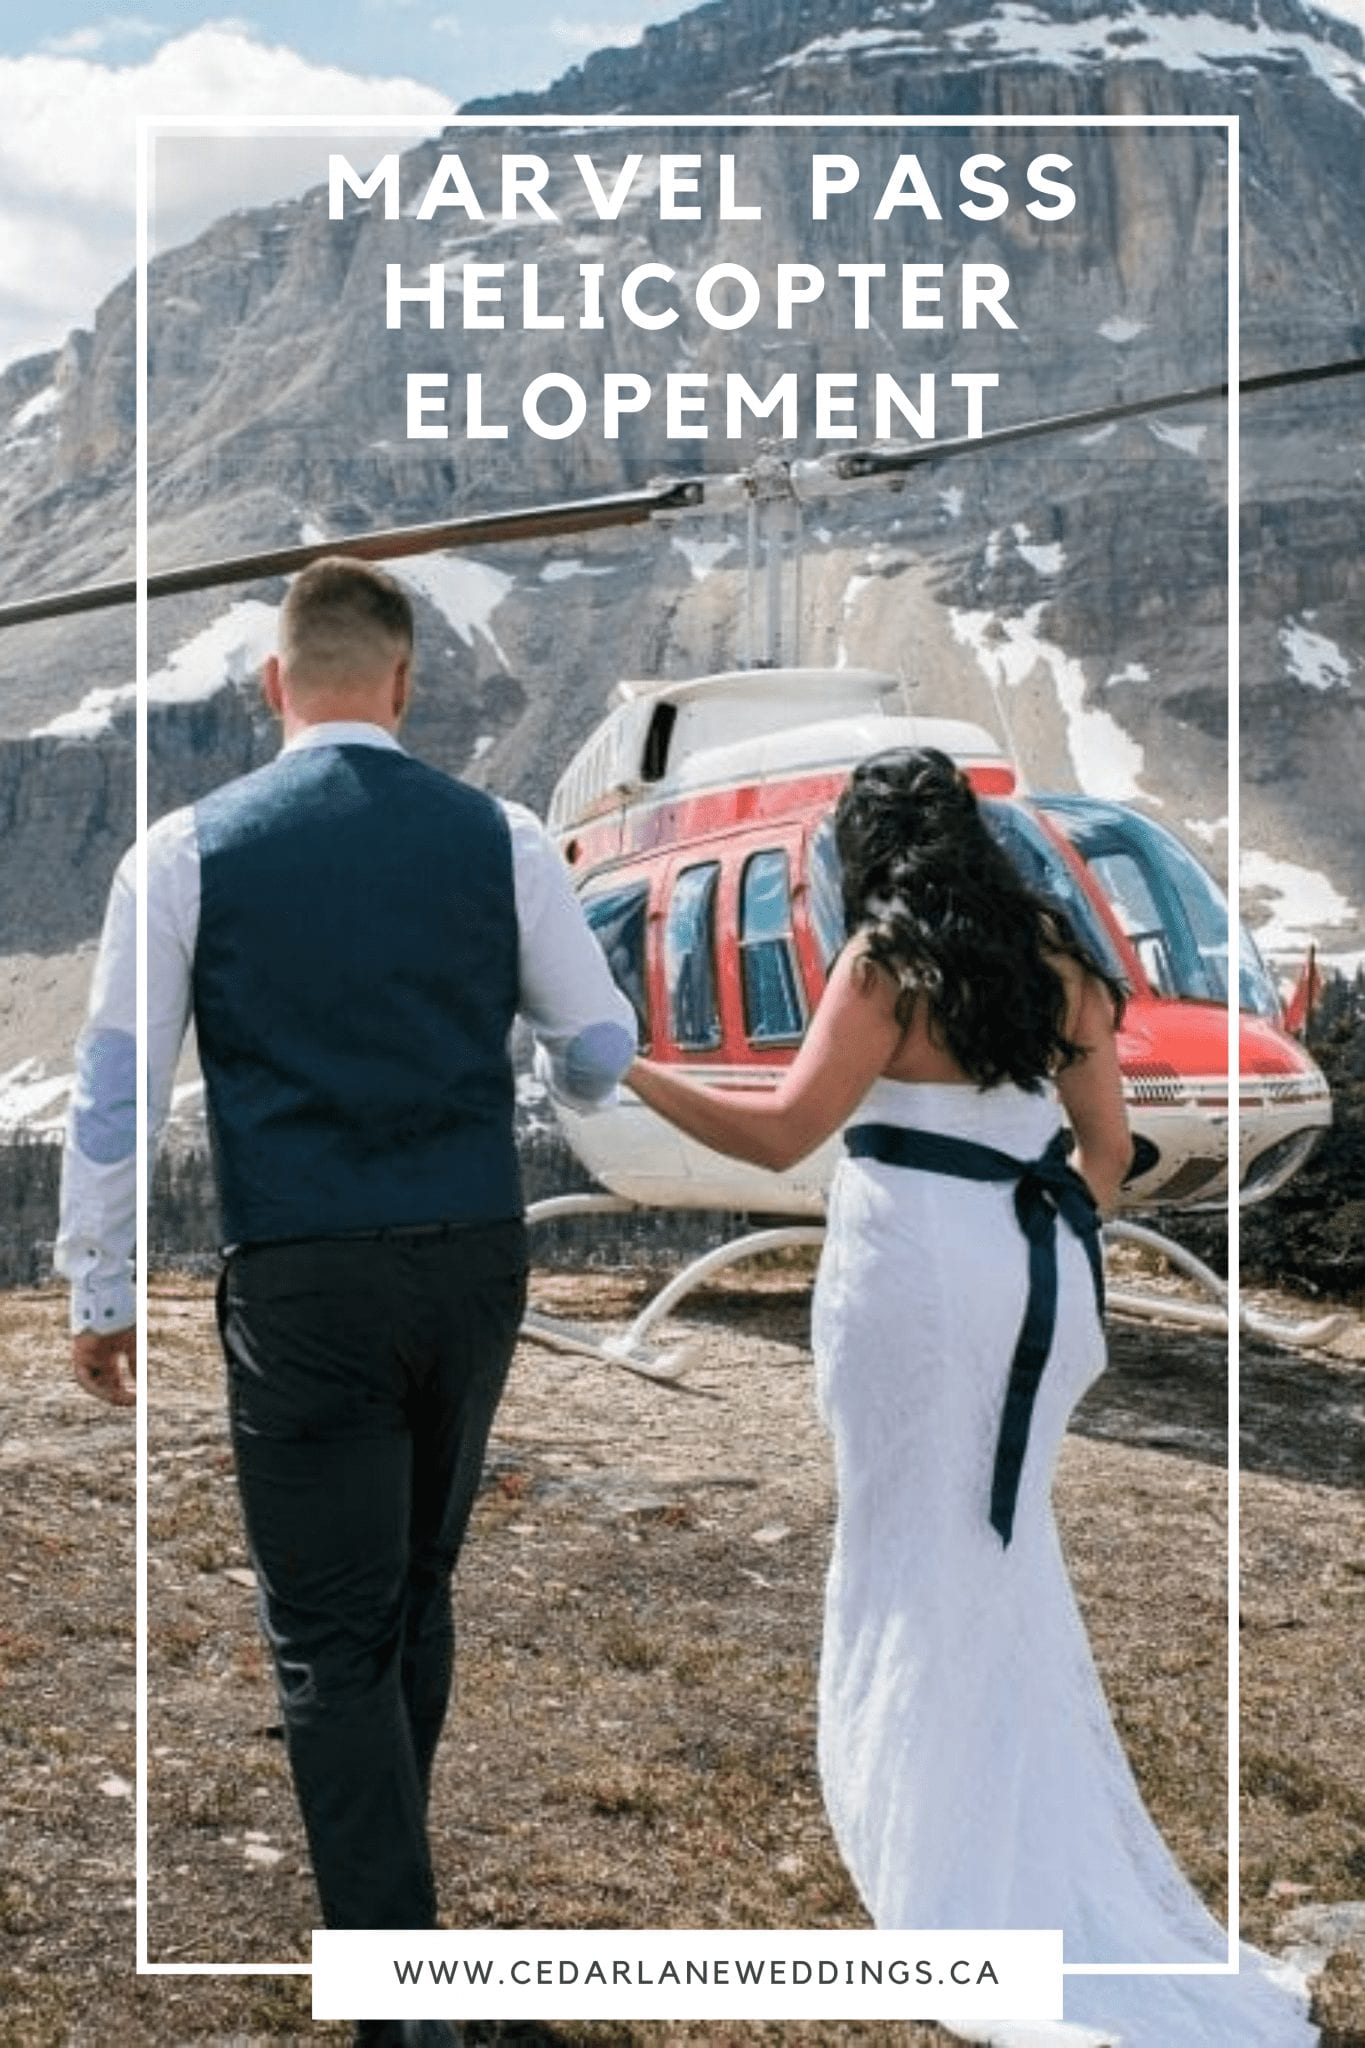 Marvel Pass Helicopter Elopement